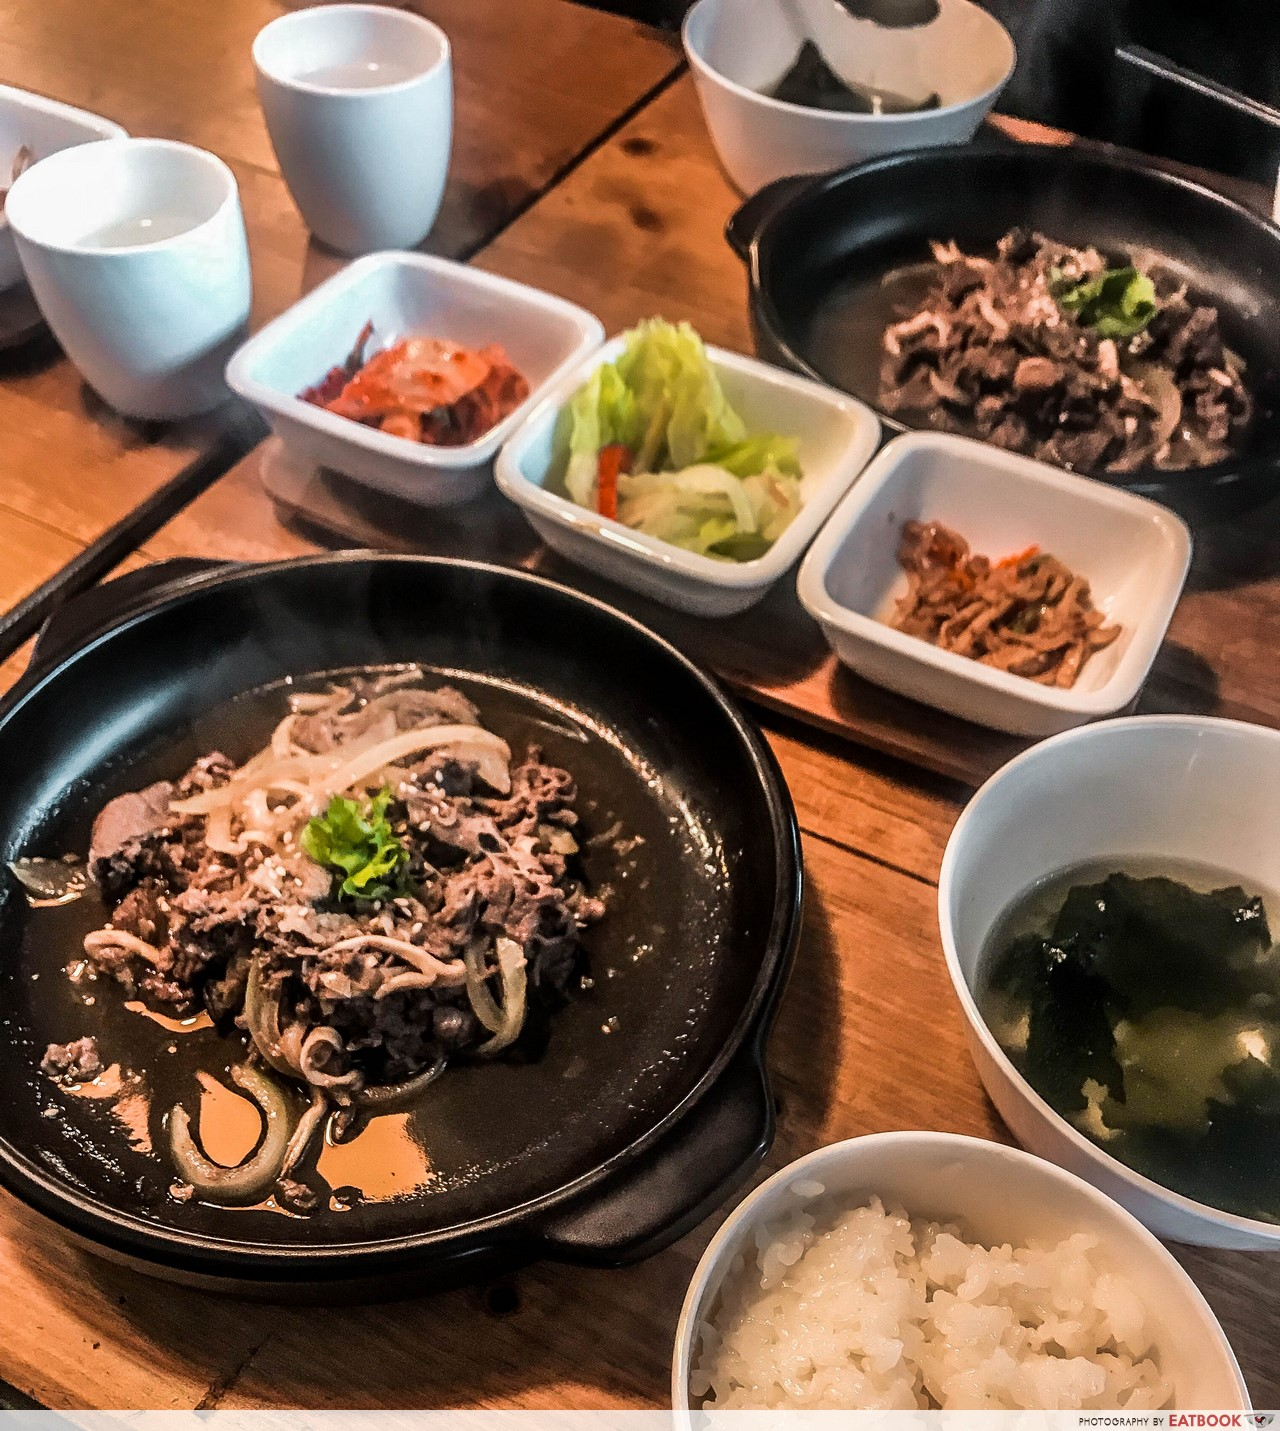 8 Halal Food Places In Seoul For Meat And Tteokbokki Feasts With Your Squad Eatbook Sg New Singapore Restaurant And Street Food Ideas Recommendations